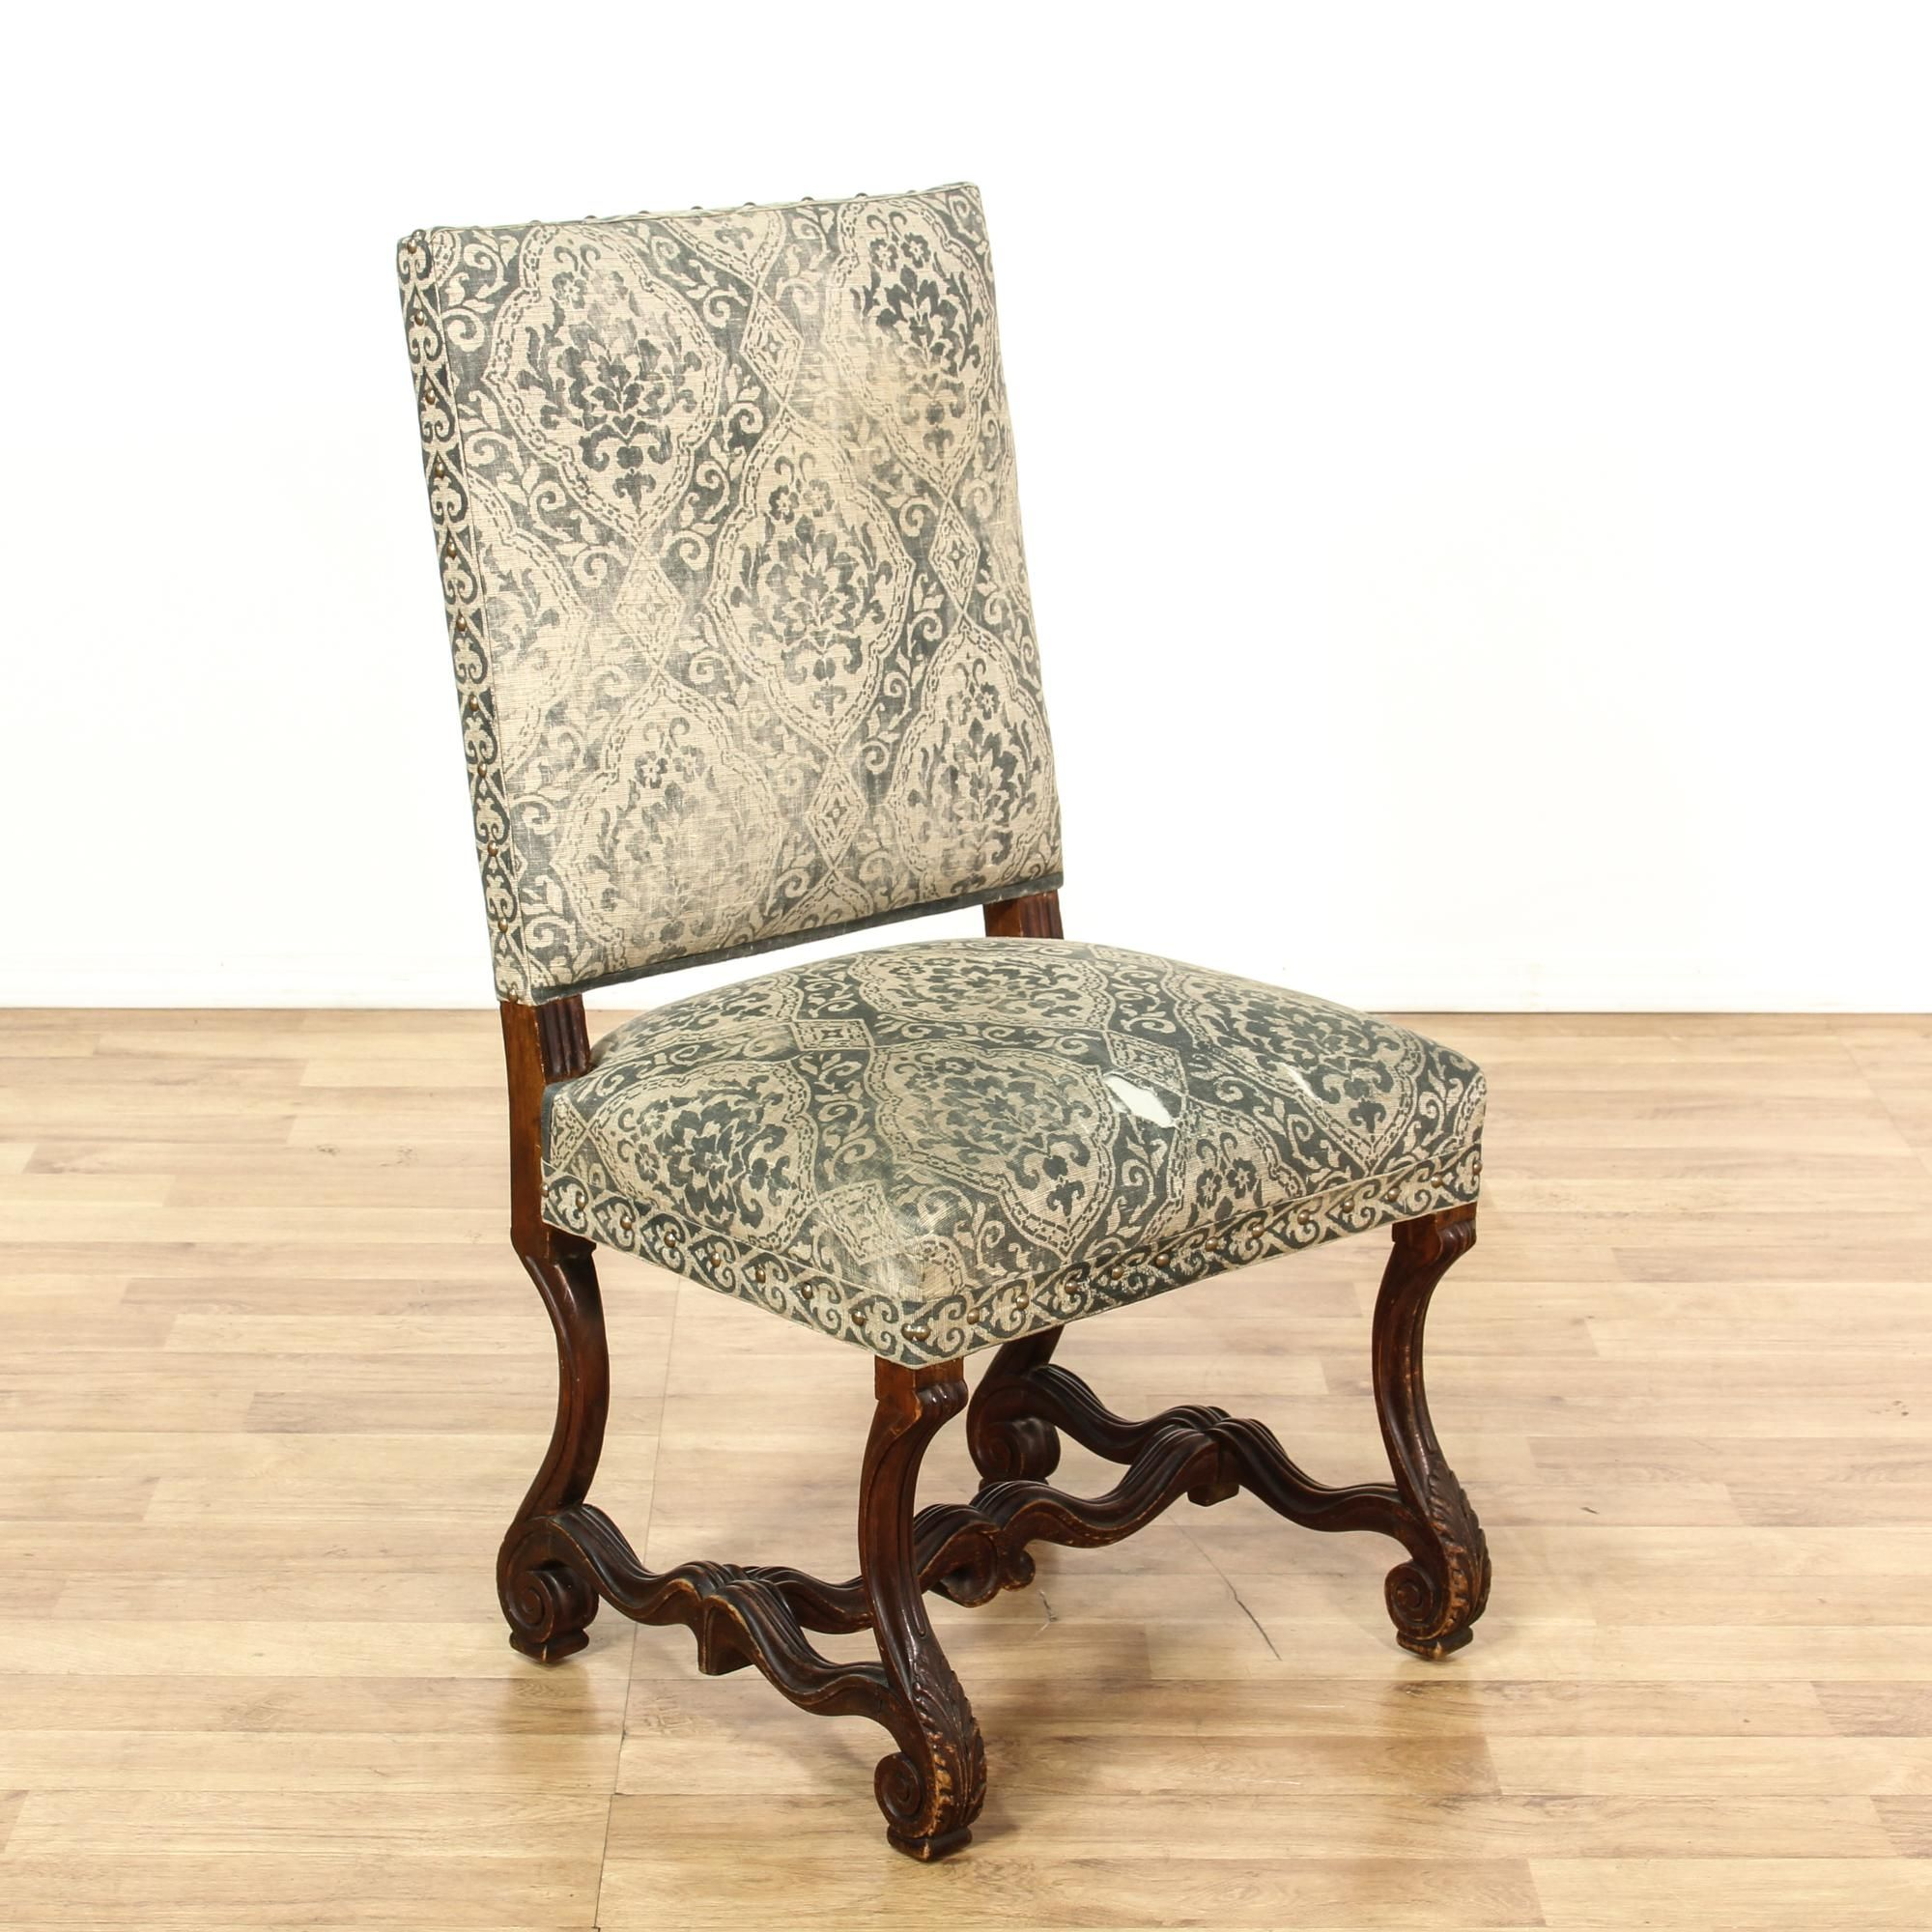 Carved wood burlap upholstered accent chair